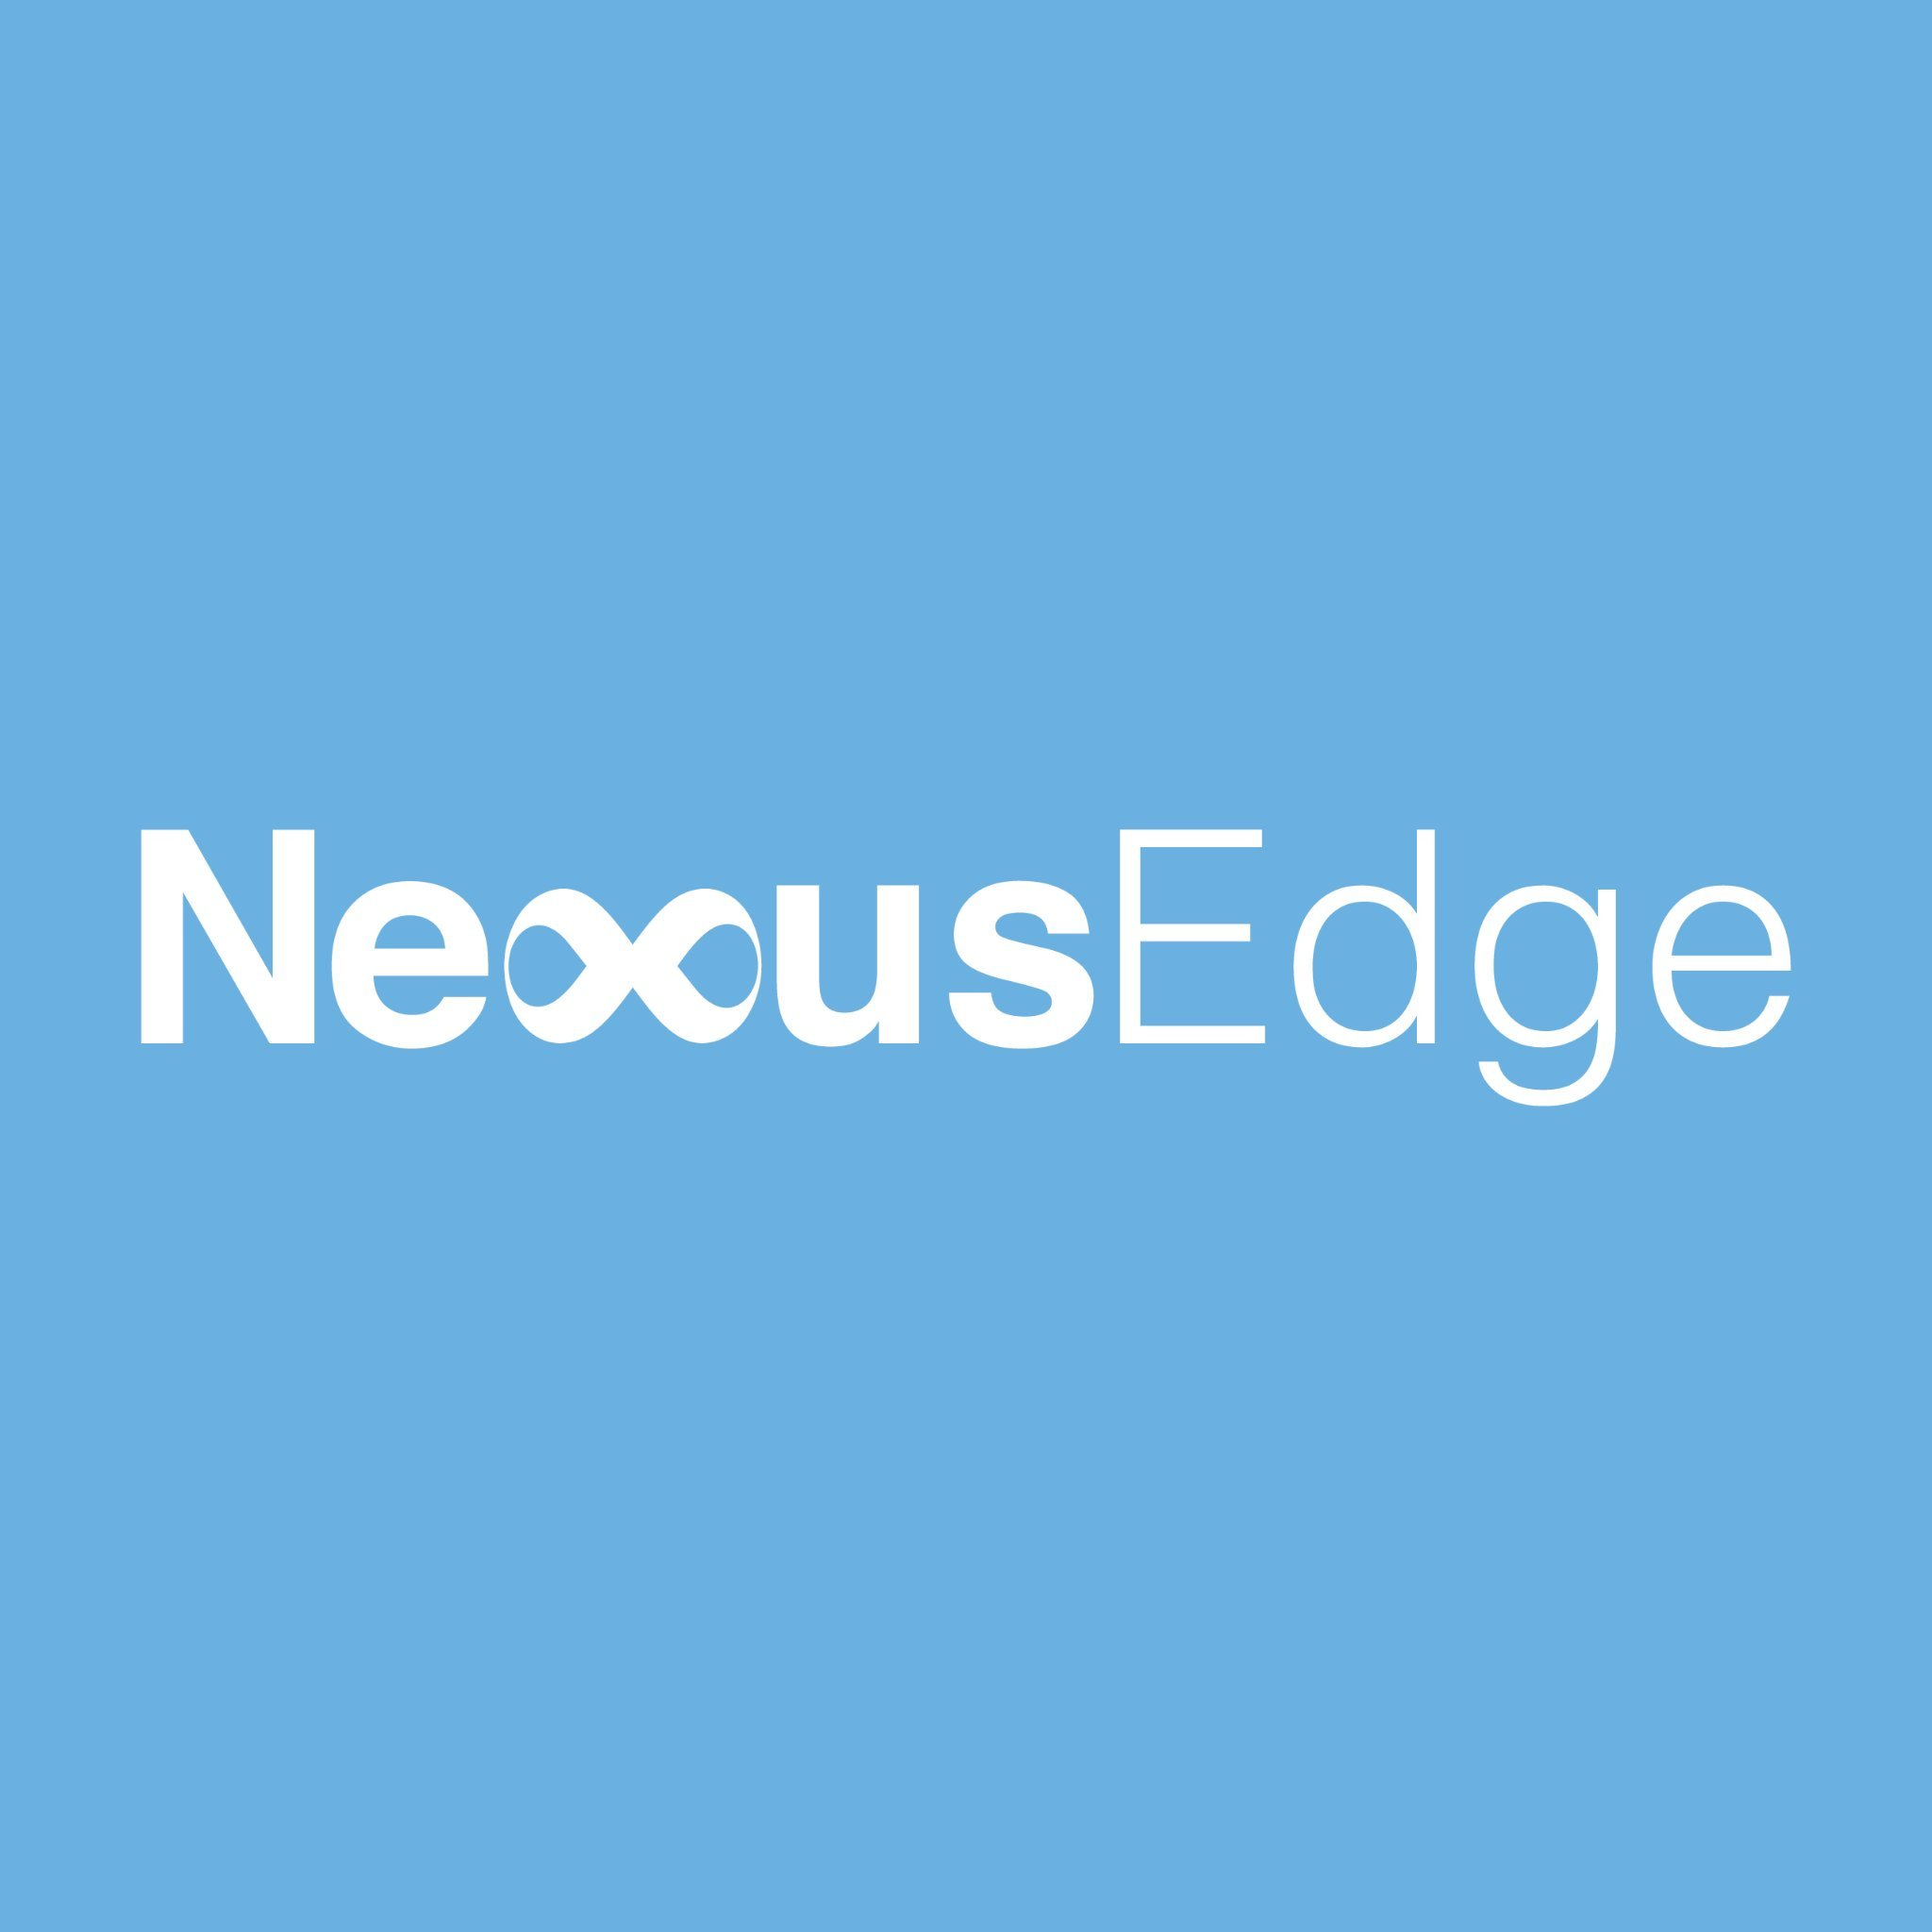 NexusEdge